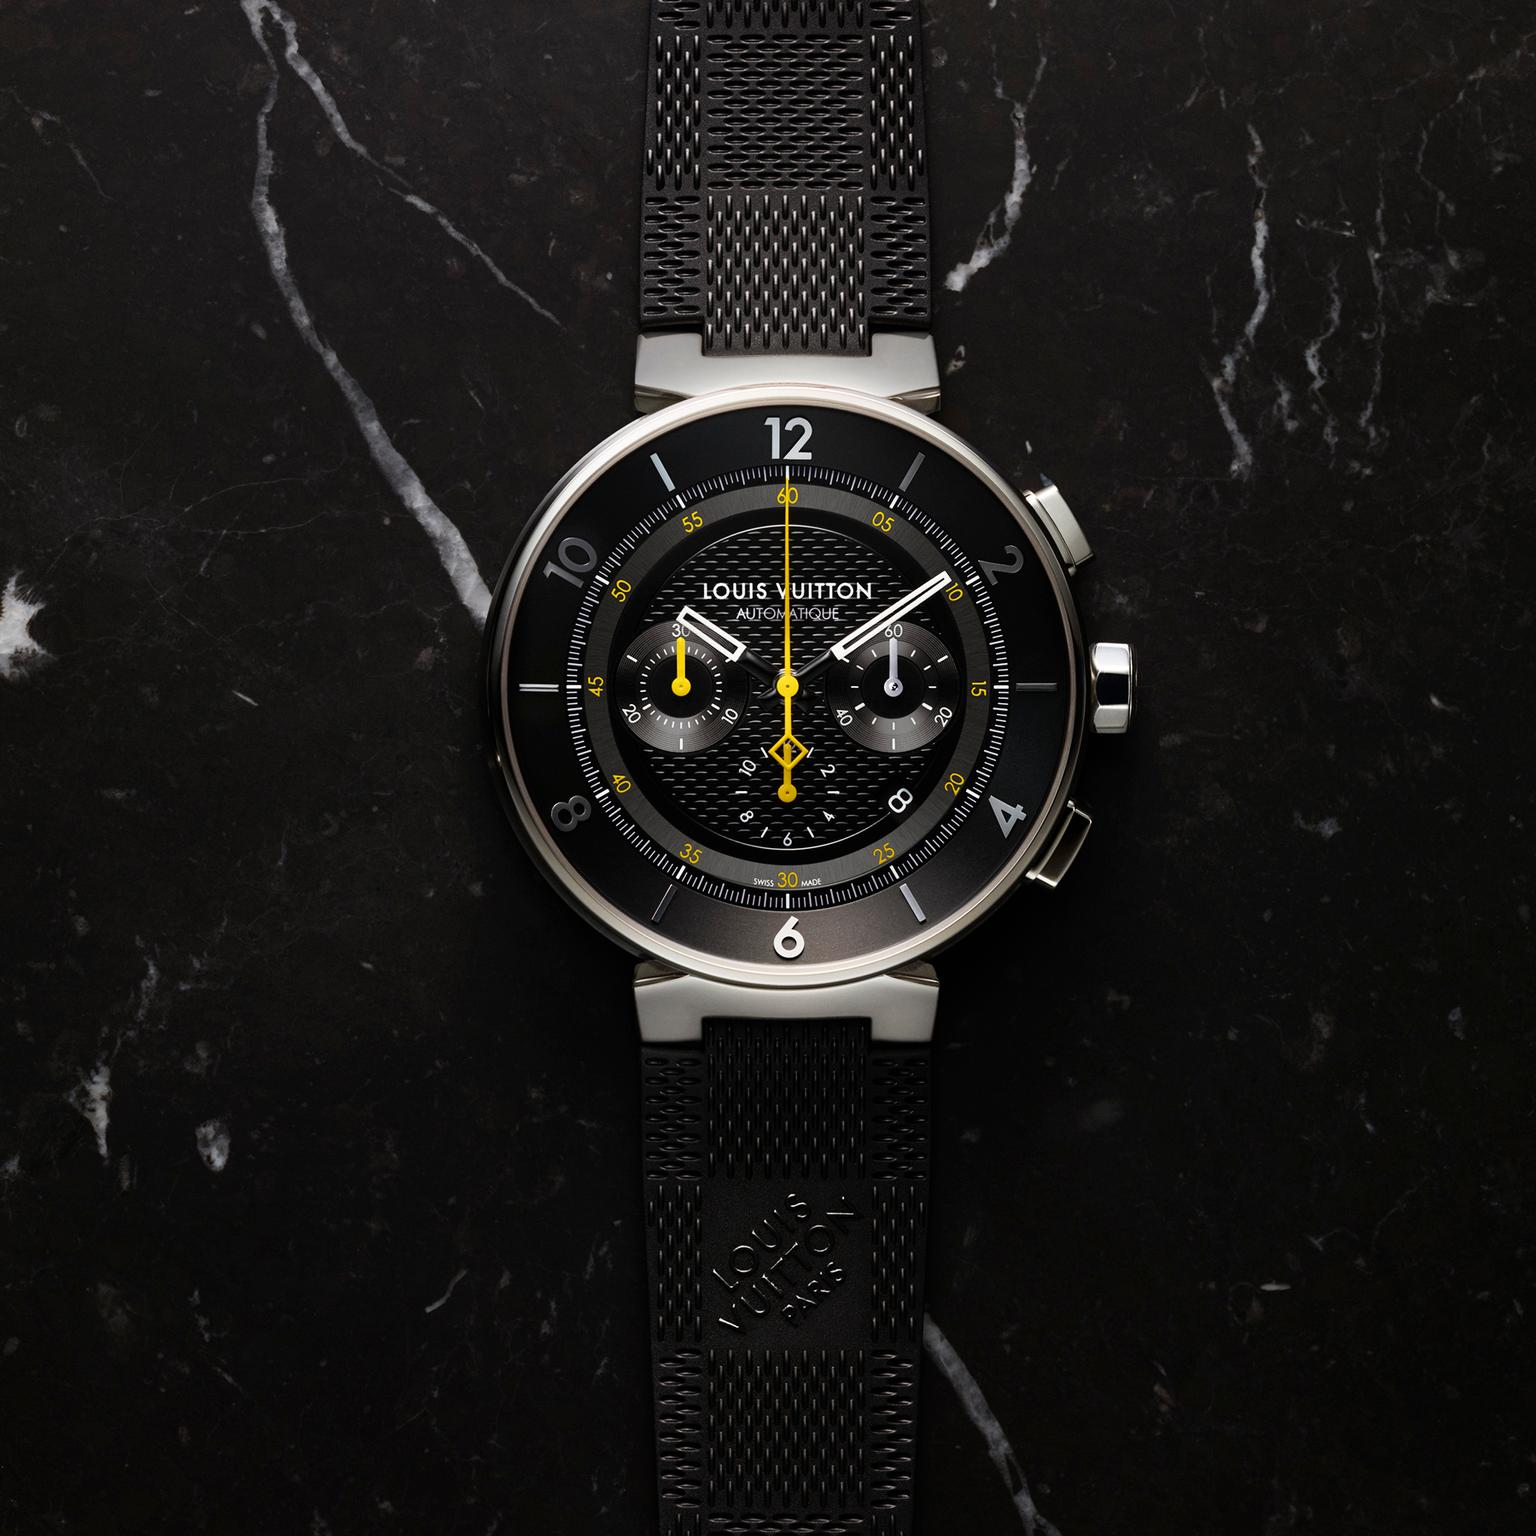 Louis Vuitton Tambour Moon Chronograph Black watch